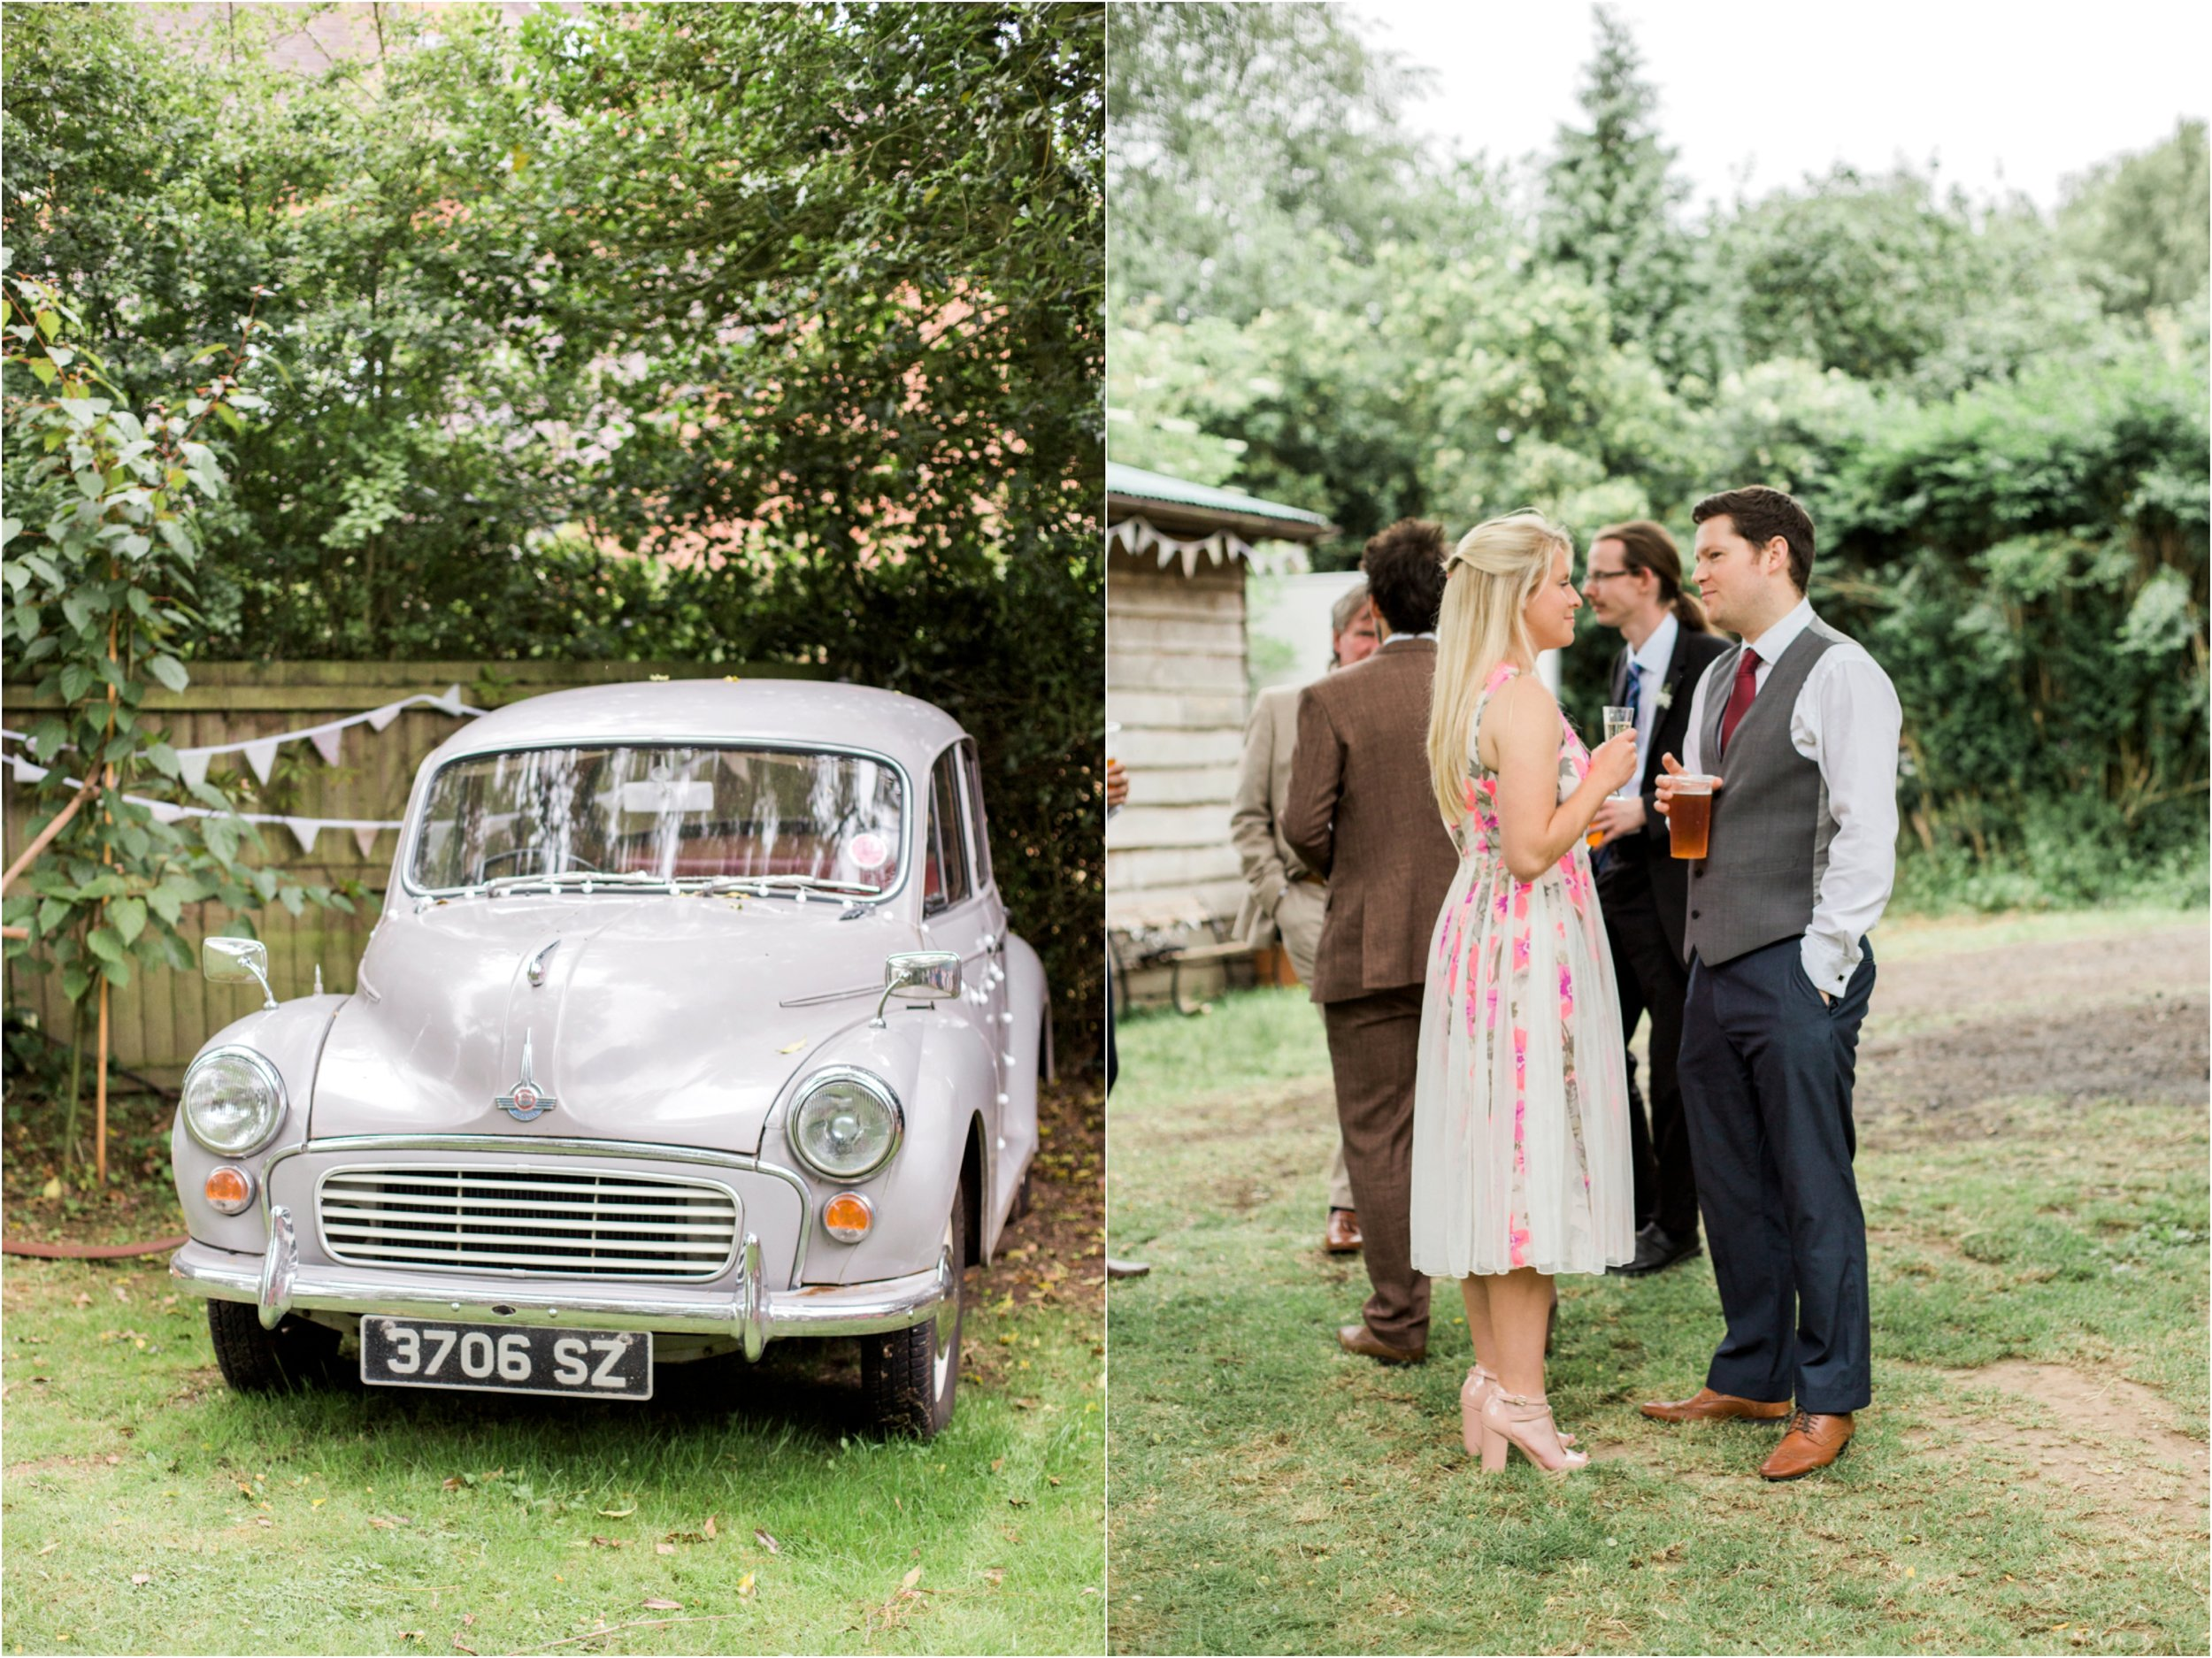 078Lotti & Dave marquee wedding Sophie Evans Photography West Midlands reportage wedding photography.jpg